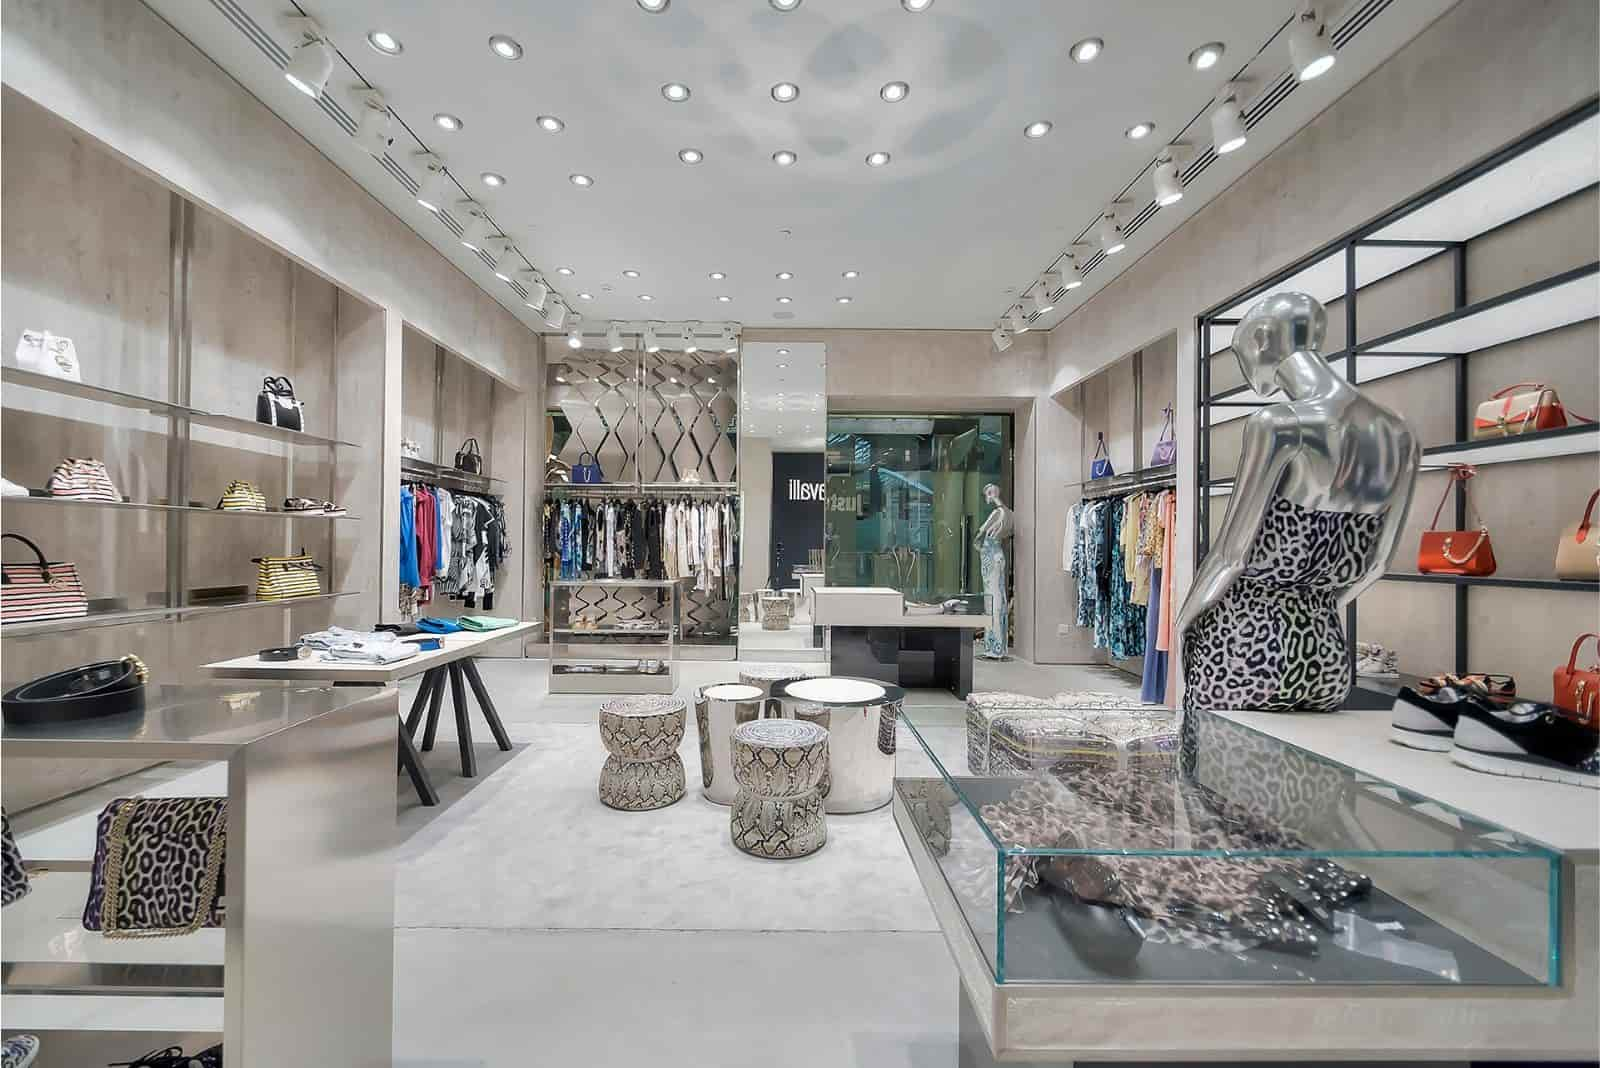 JUST CAVALLI AT KINGDOM CENTRE – RIYADH, KSA